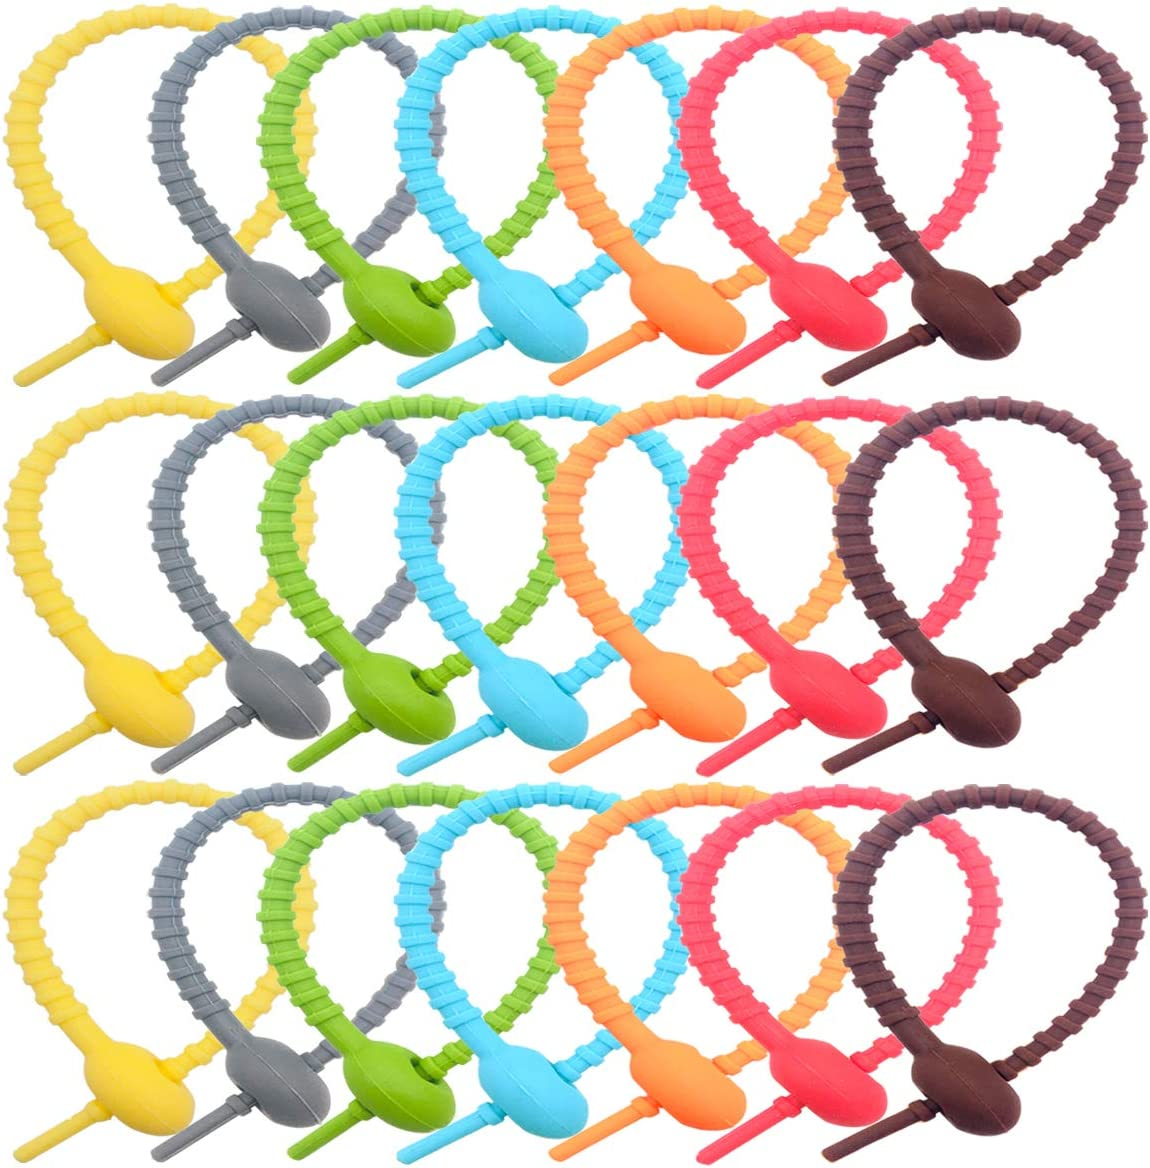 AYWFEY 21 Pieces Colorful Silicone Twist Ties,Cable Cord Wraps Management Organizer, All-Purpose Bag Sealing Clips,Reusable Bread Tie, Food Saver, Household Snake Straps,Wire Strips,21cm/8.26in